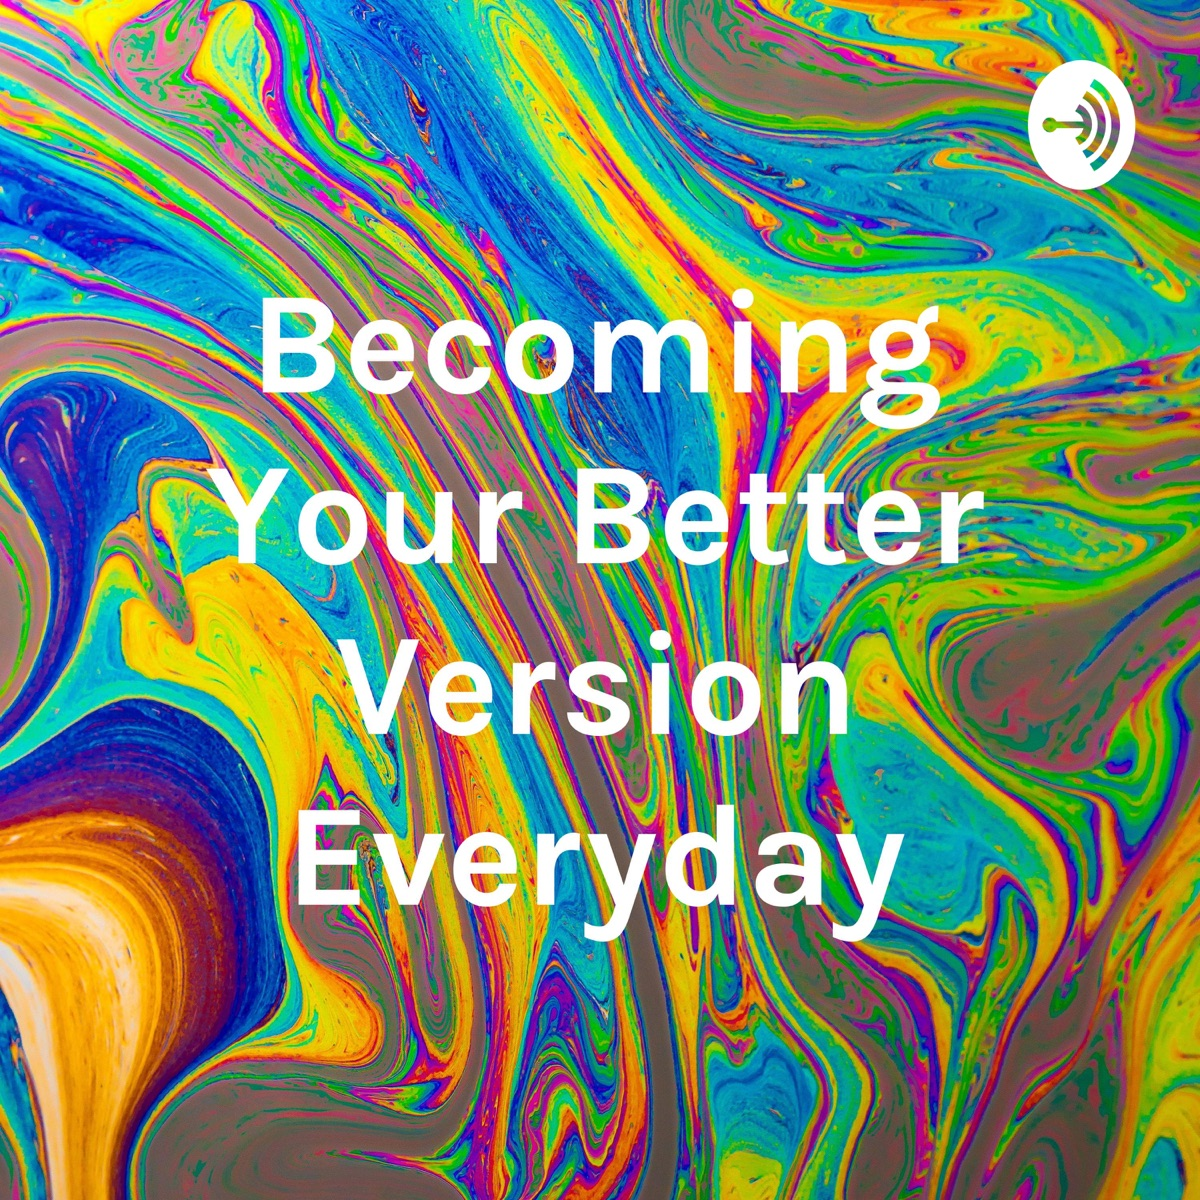 Becoming Your Better Version Everyday by Dr Deepti Bahl